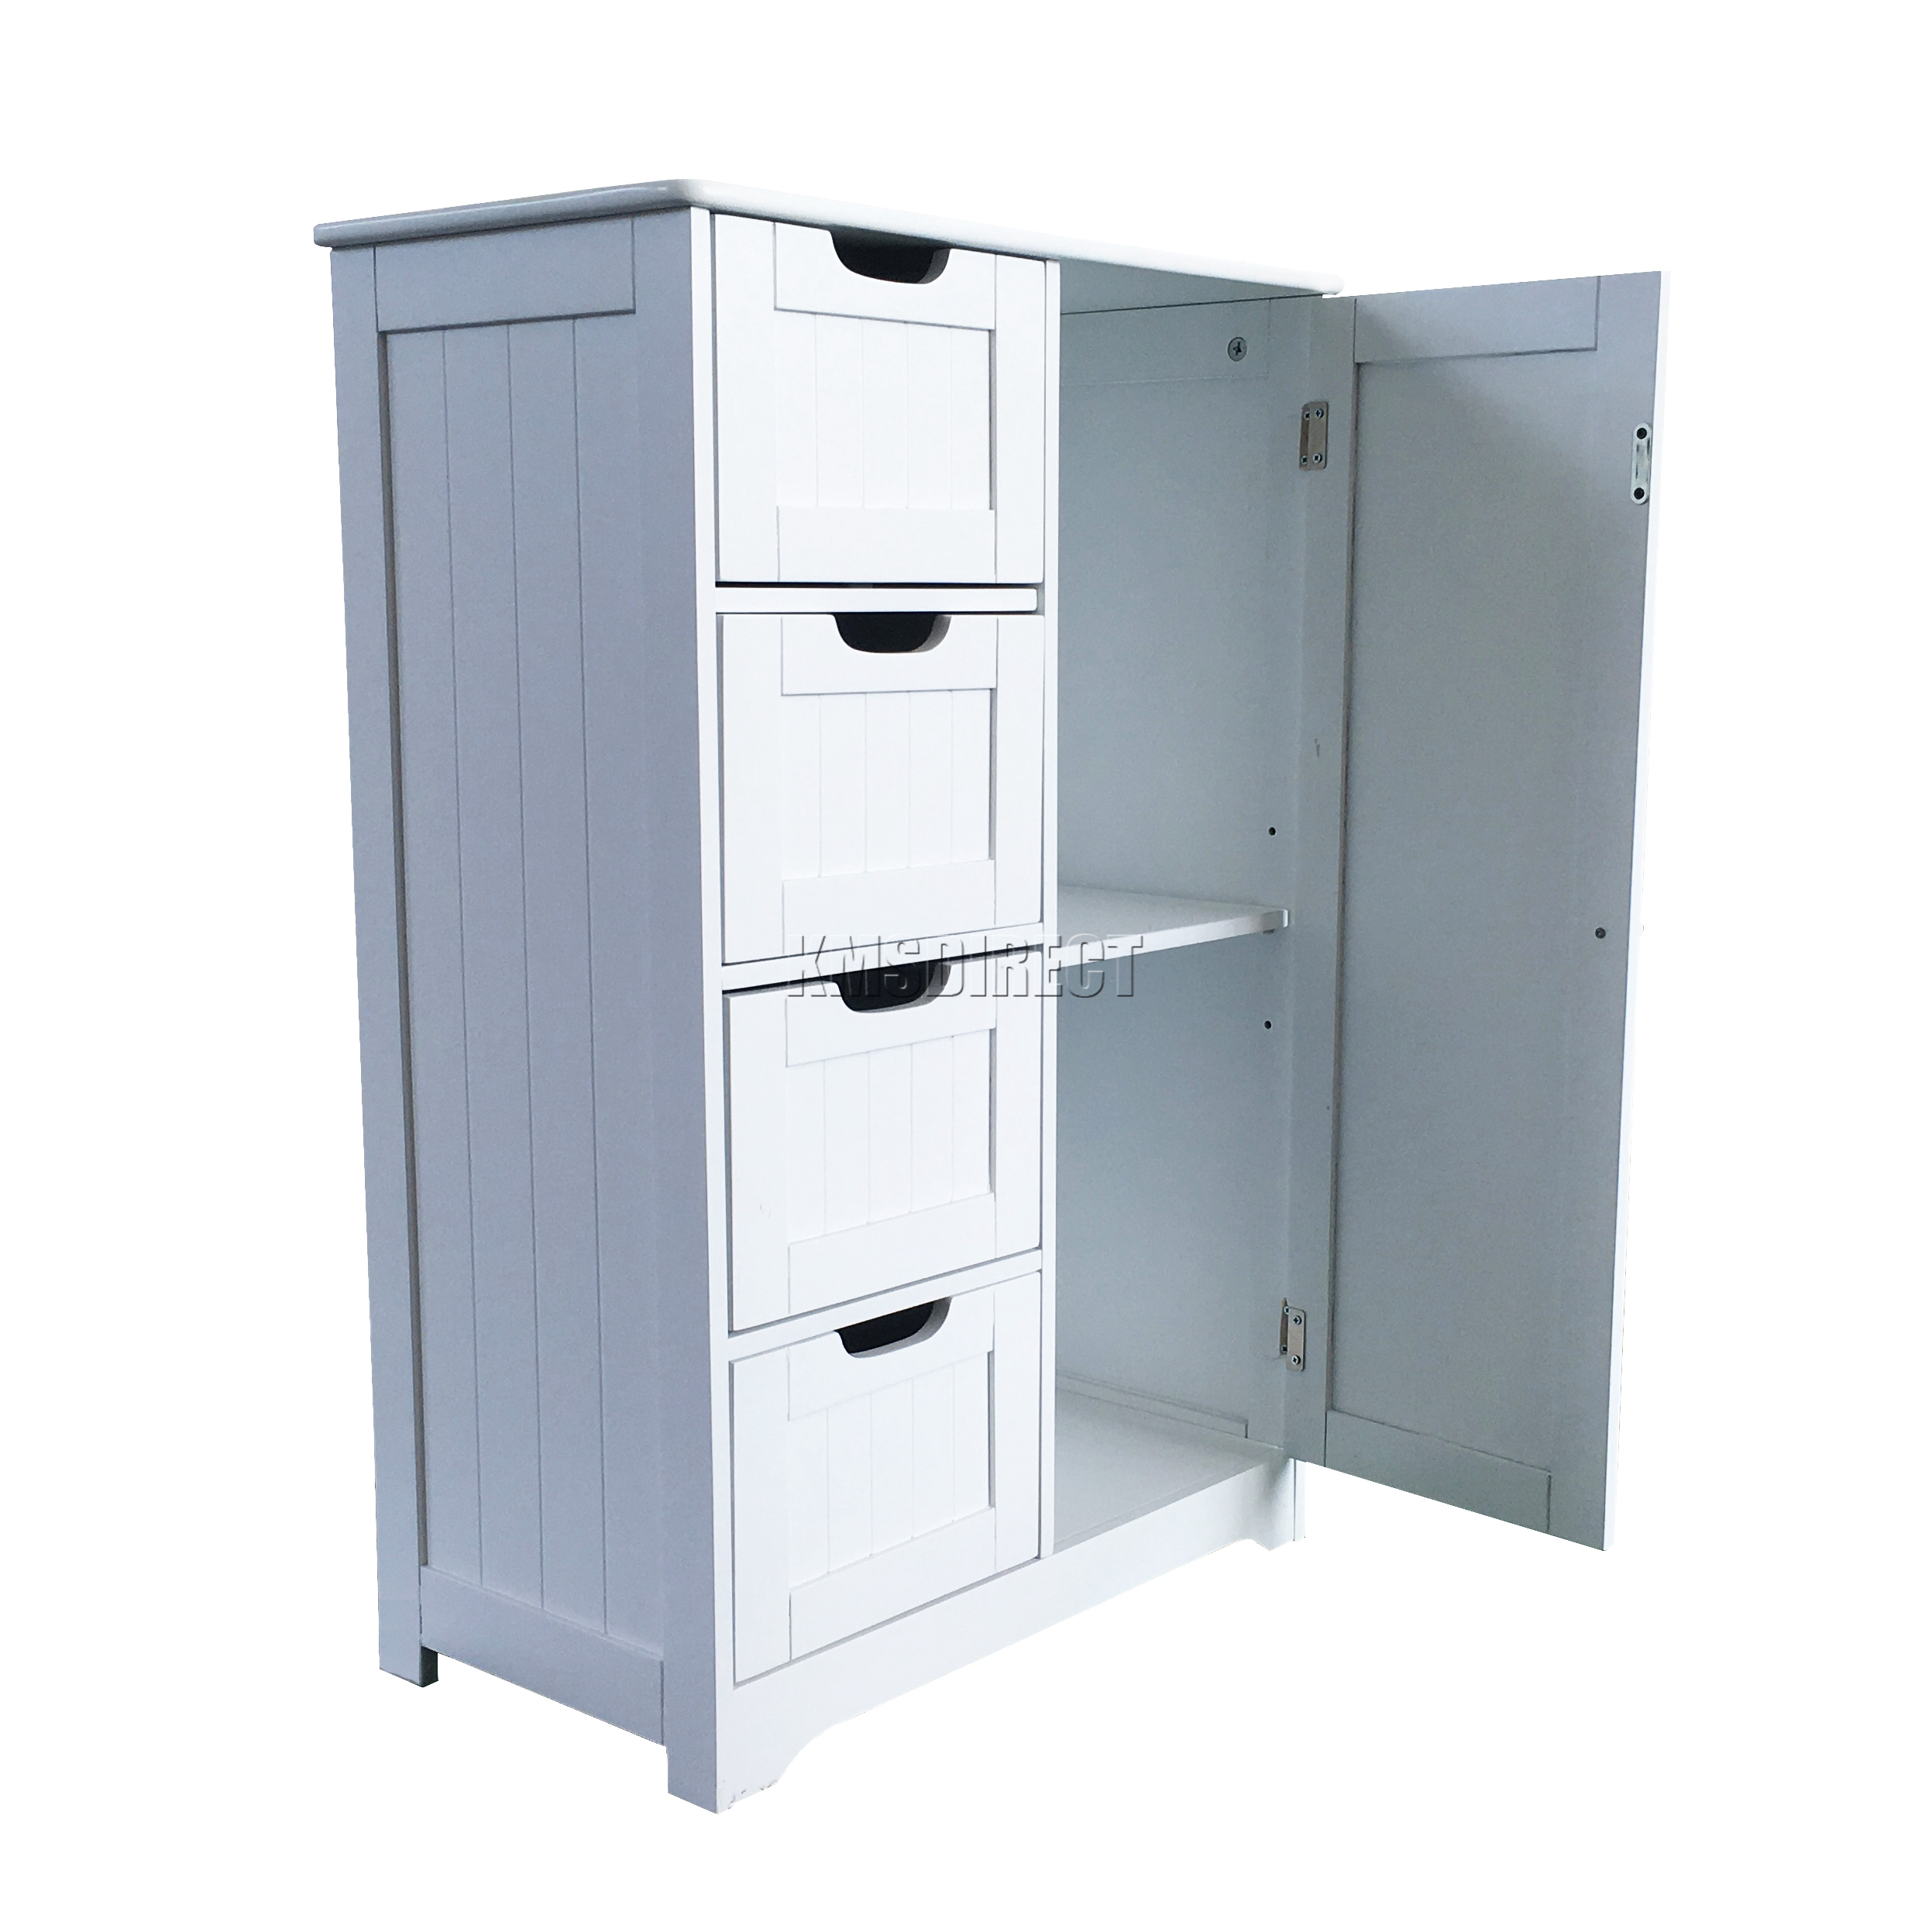 zoom storage loading madison dwell cupboard stone